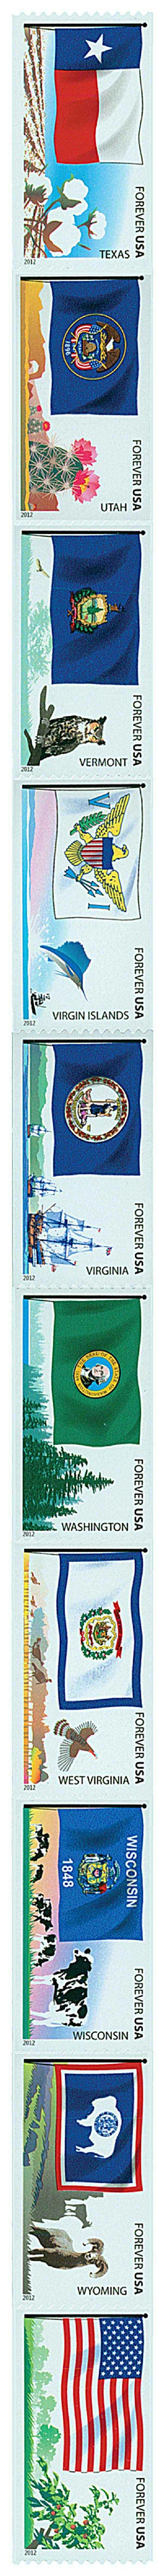 2012 Flags of Our Nation: 6th Edition, strip of 10 stamps